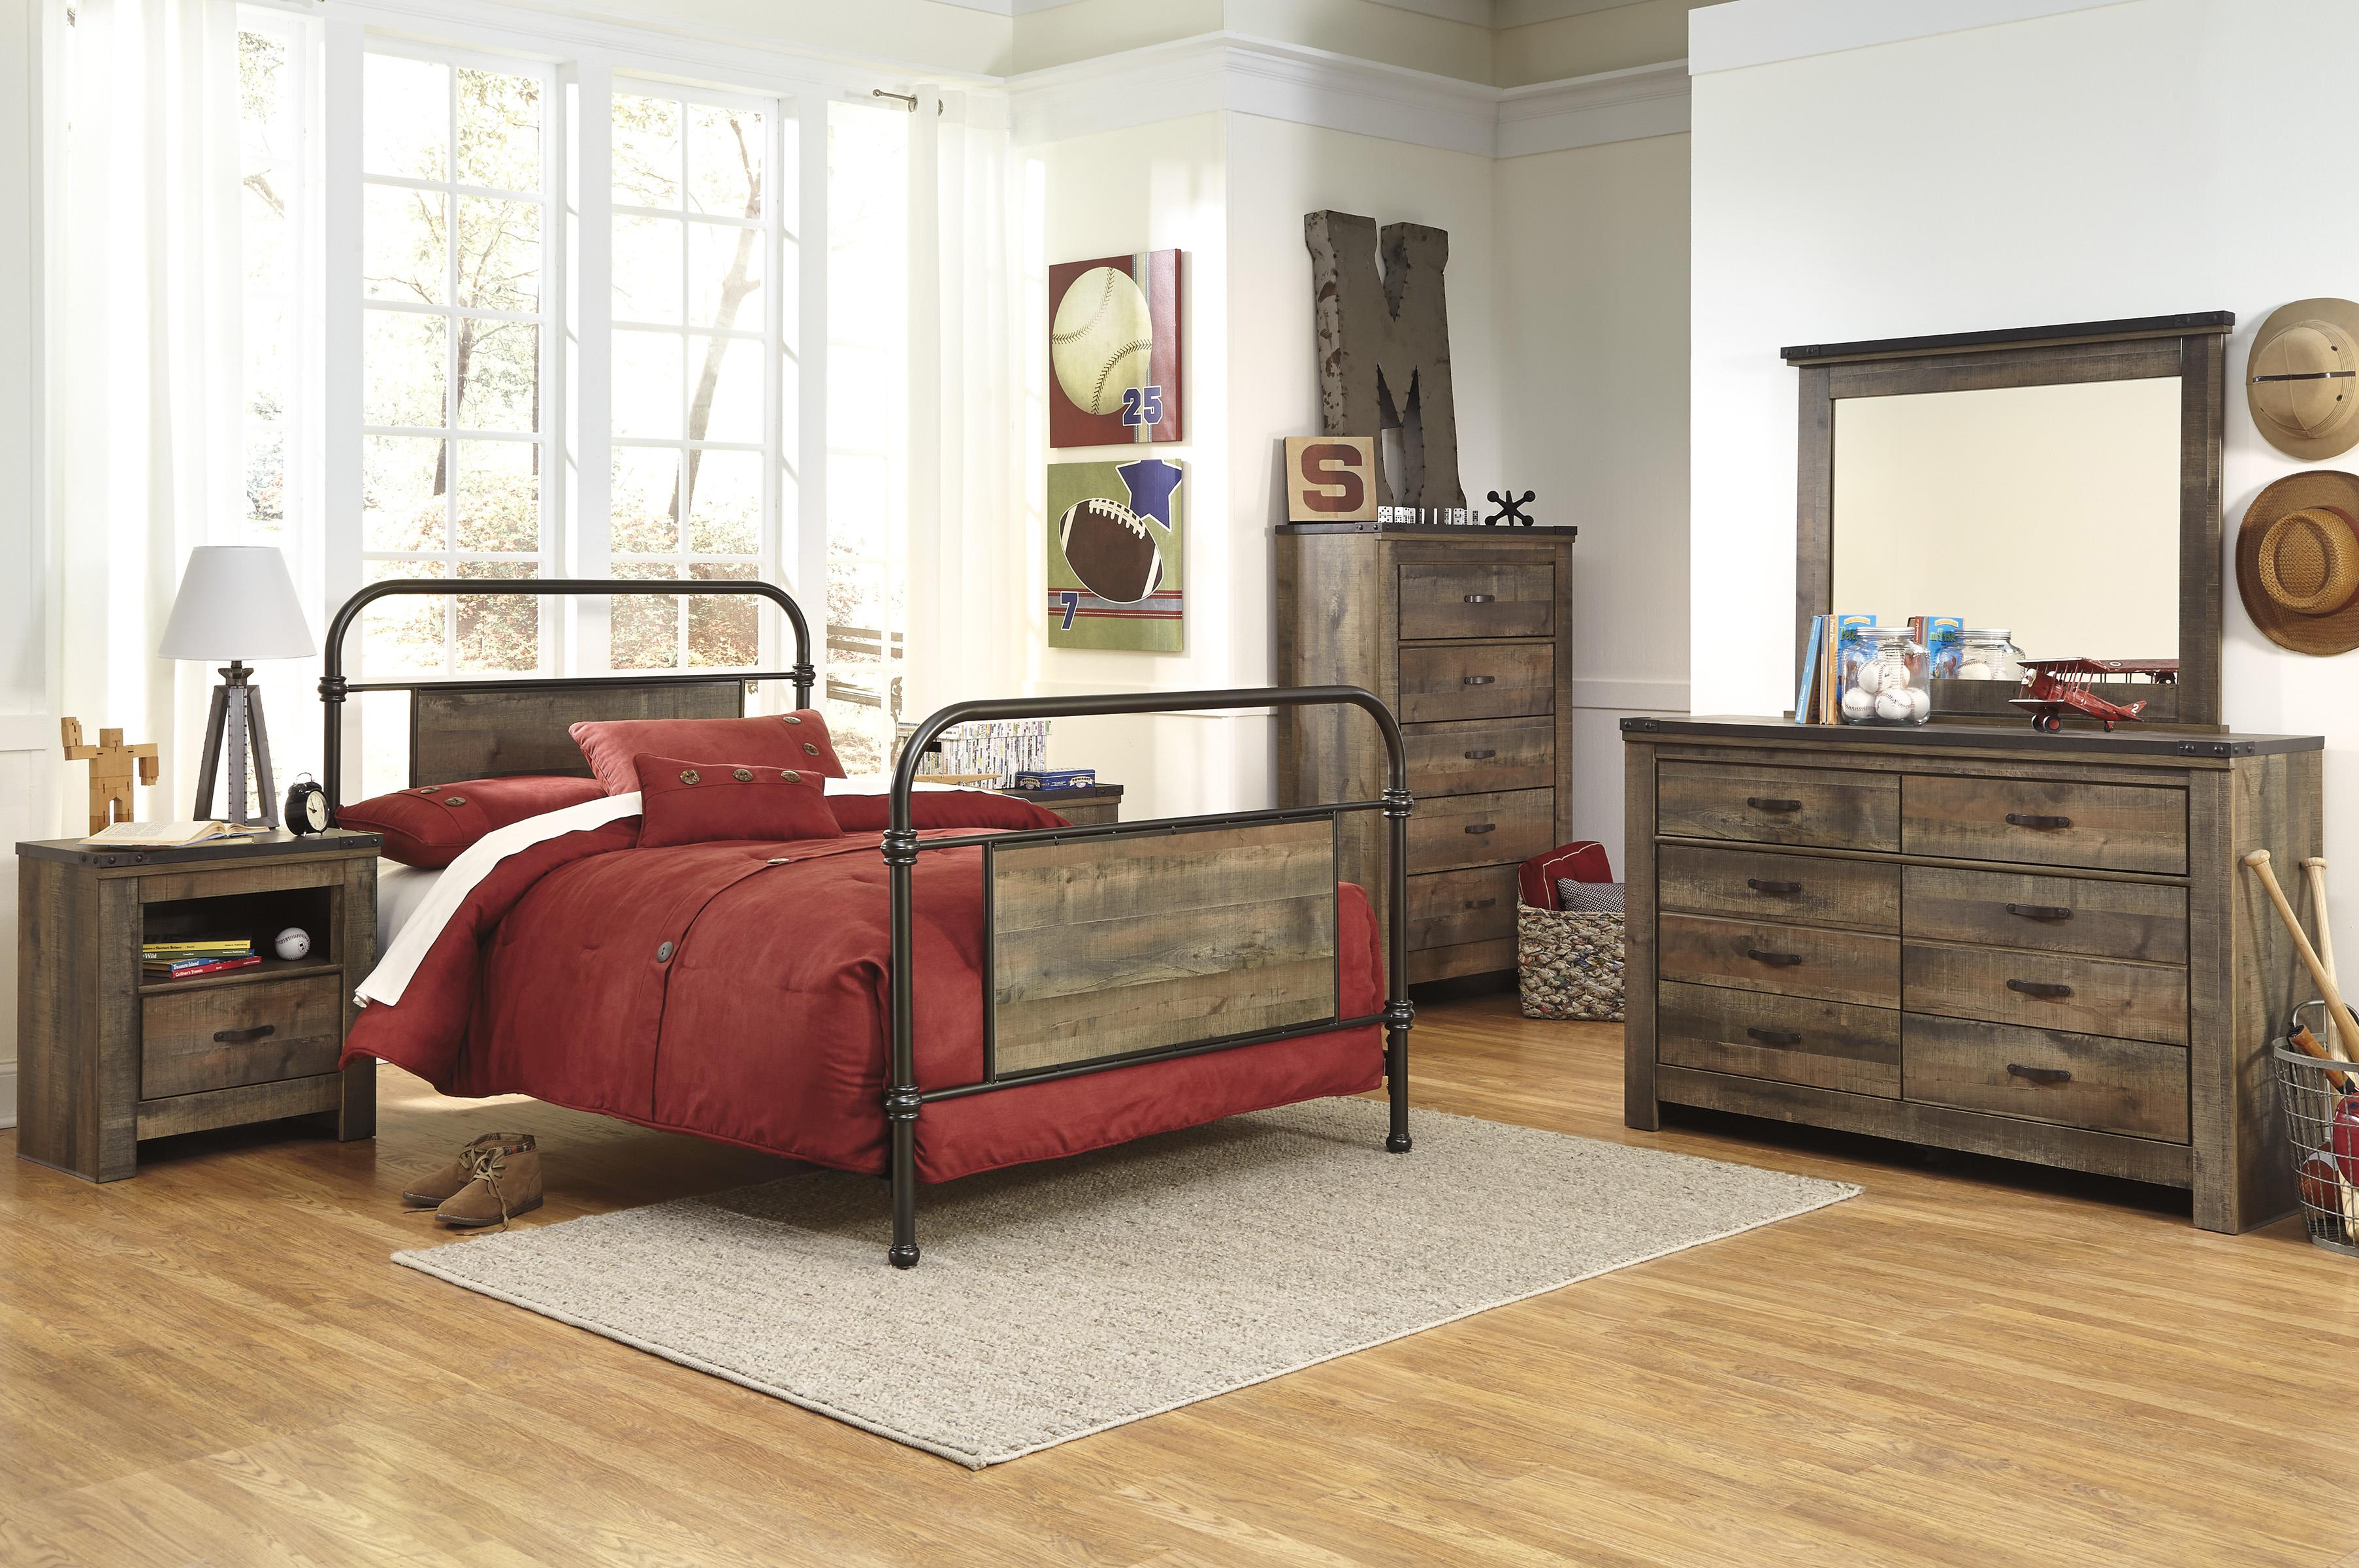 Signature Design by Ashley Trinell Twin Bedroom Group - Item Number: B446 T Bedroom Group 4